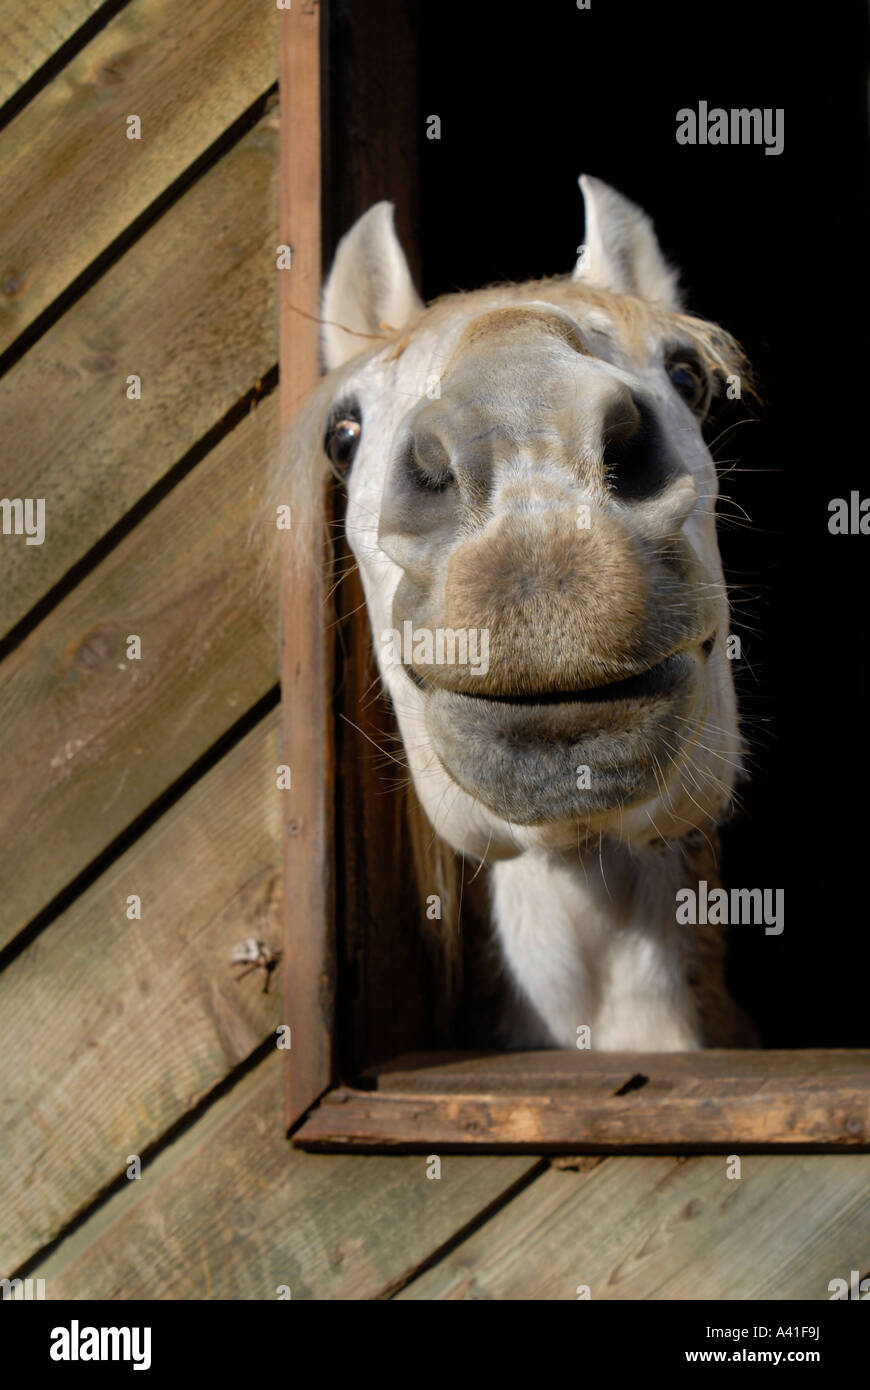 A Funny Looking White Horse Snout Close Up Stock Photo Alamy